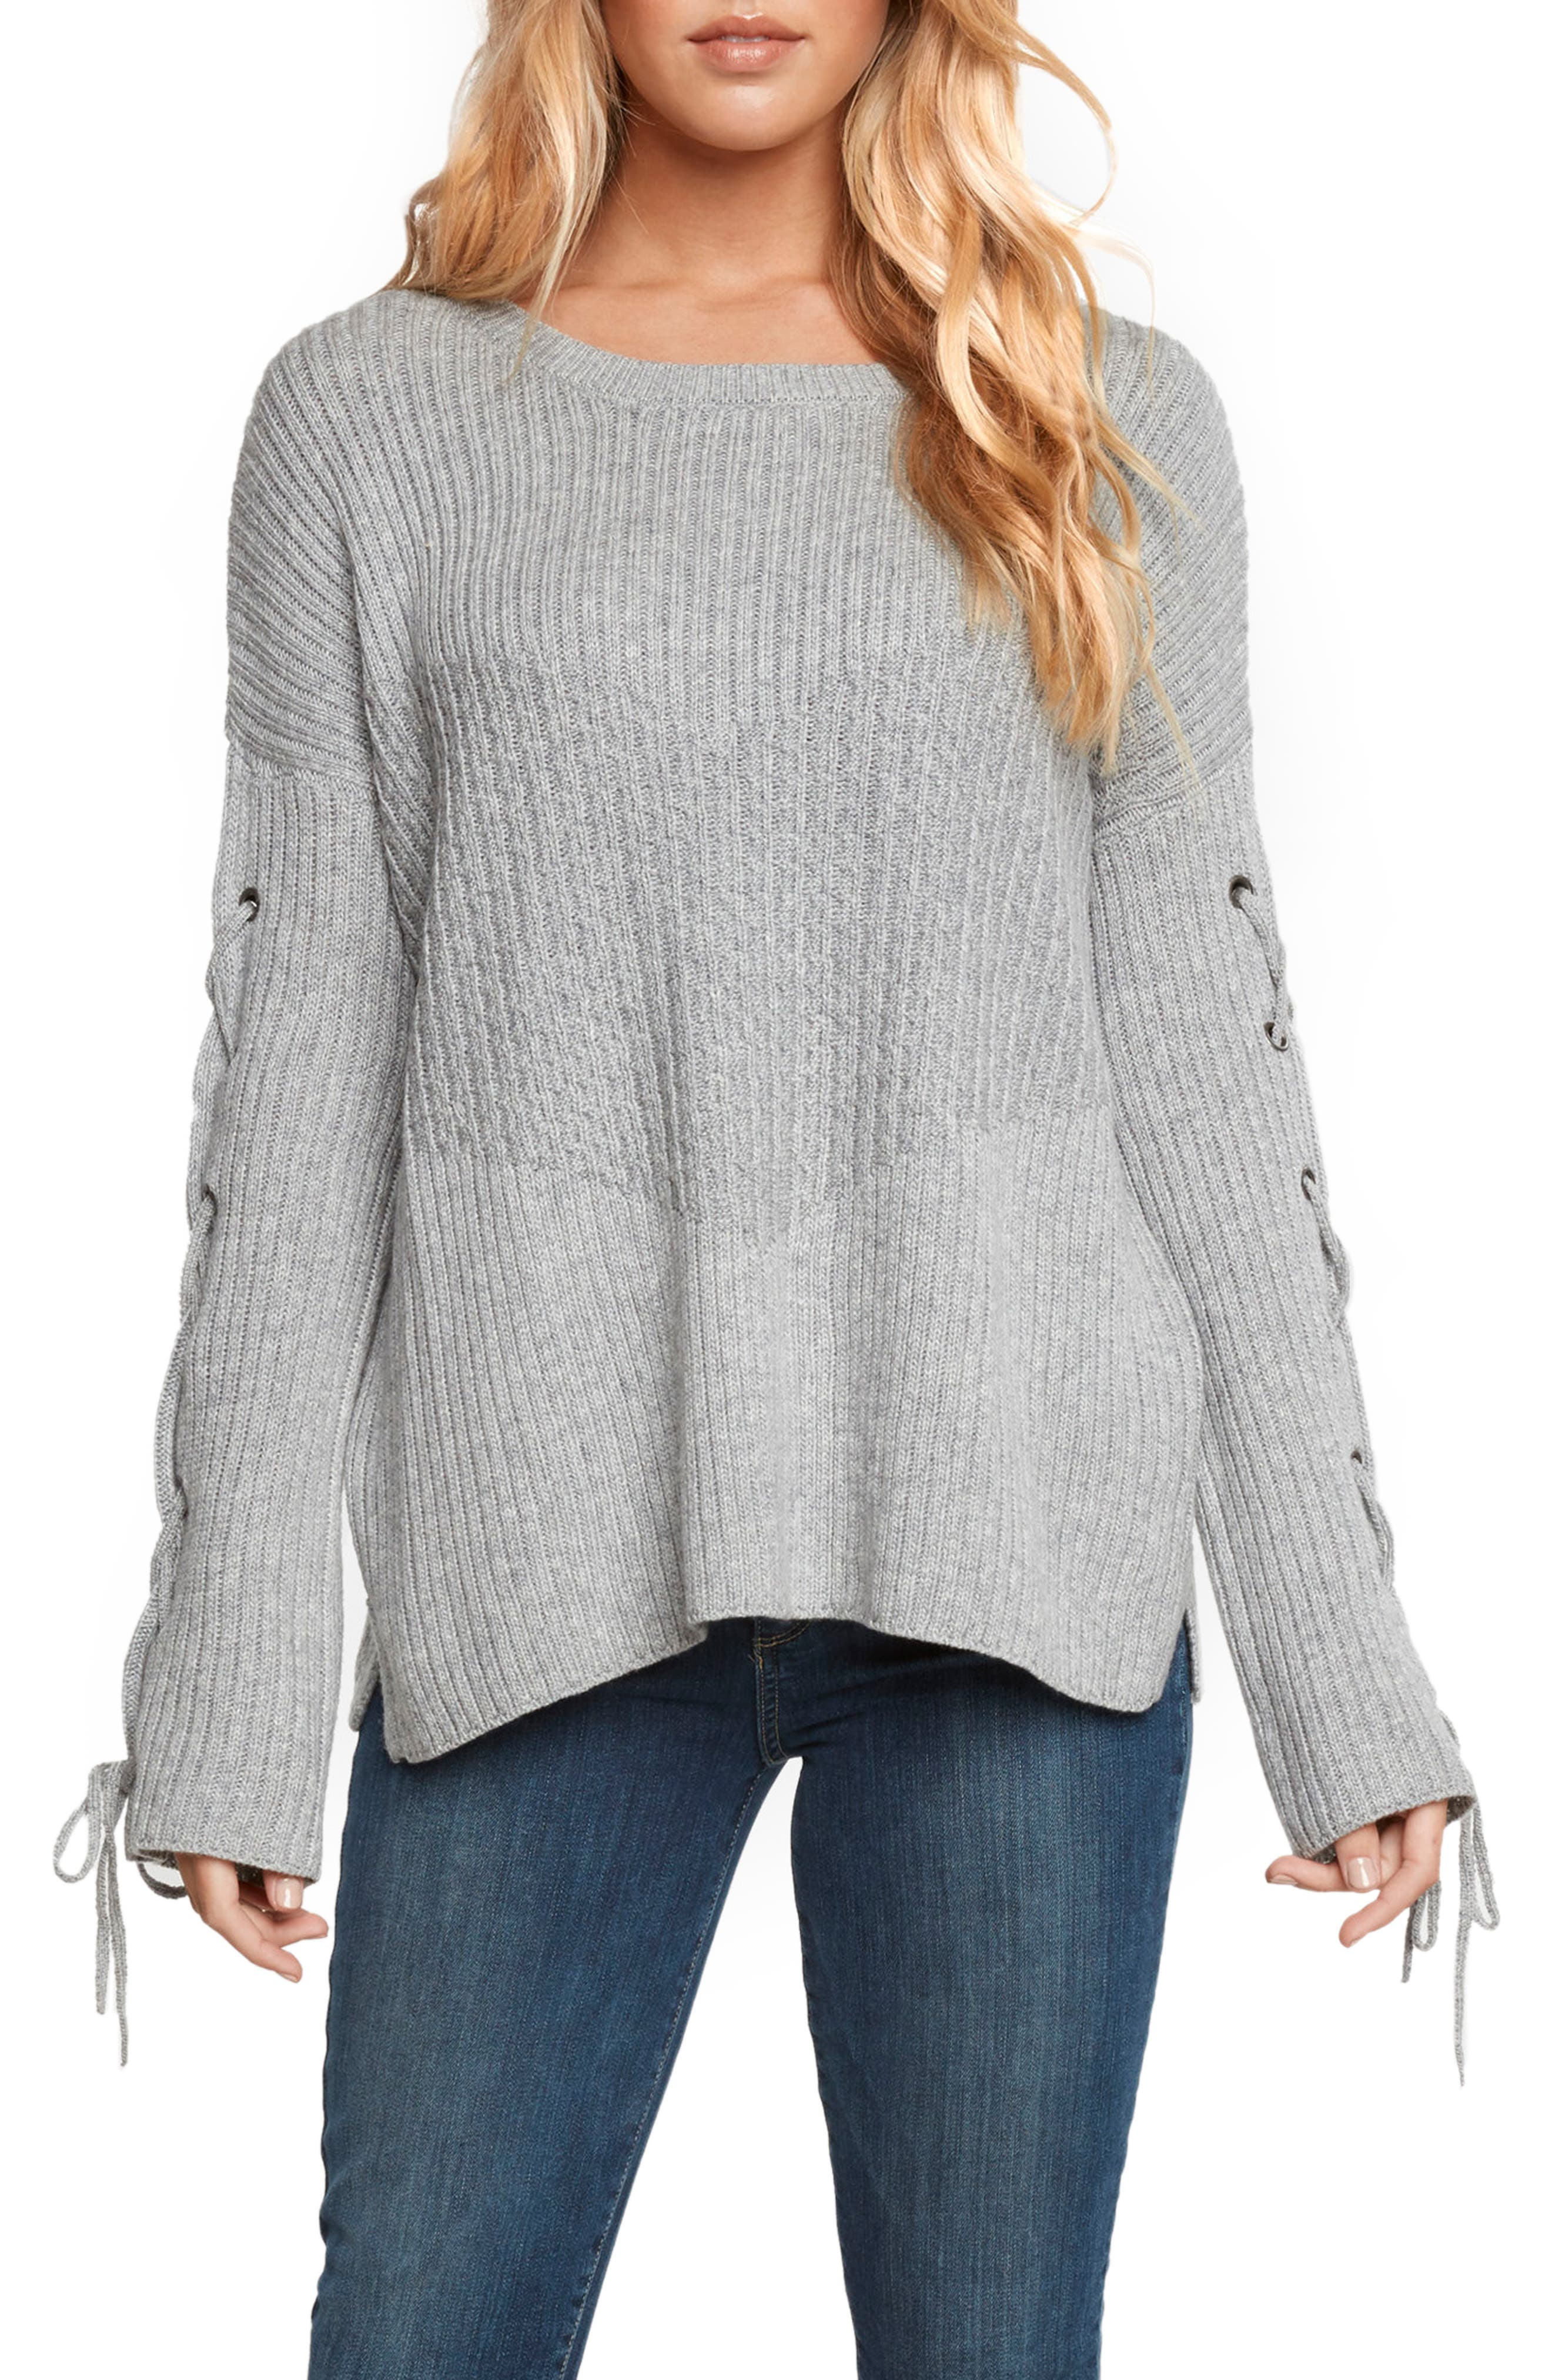 Main Image - Willow & Clay Lace-Up Sleeve Sweater